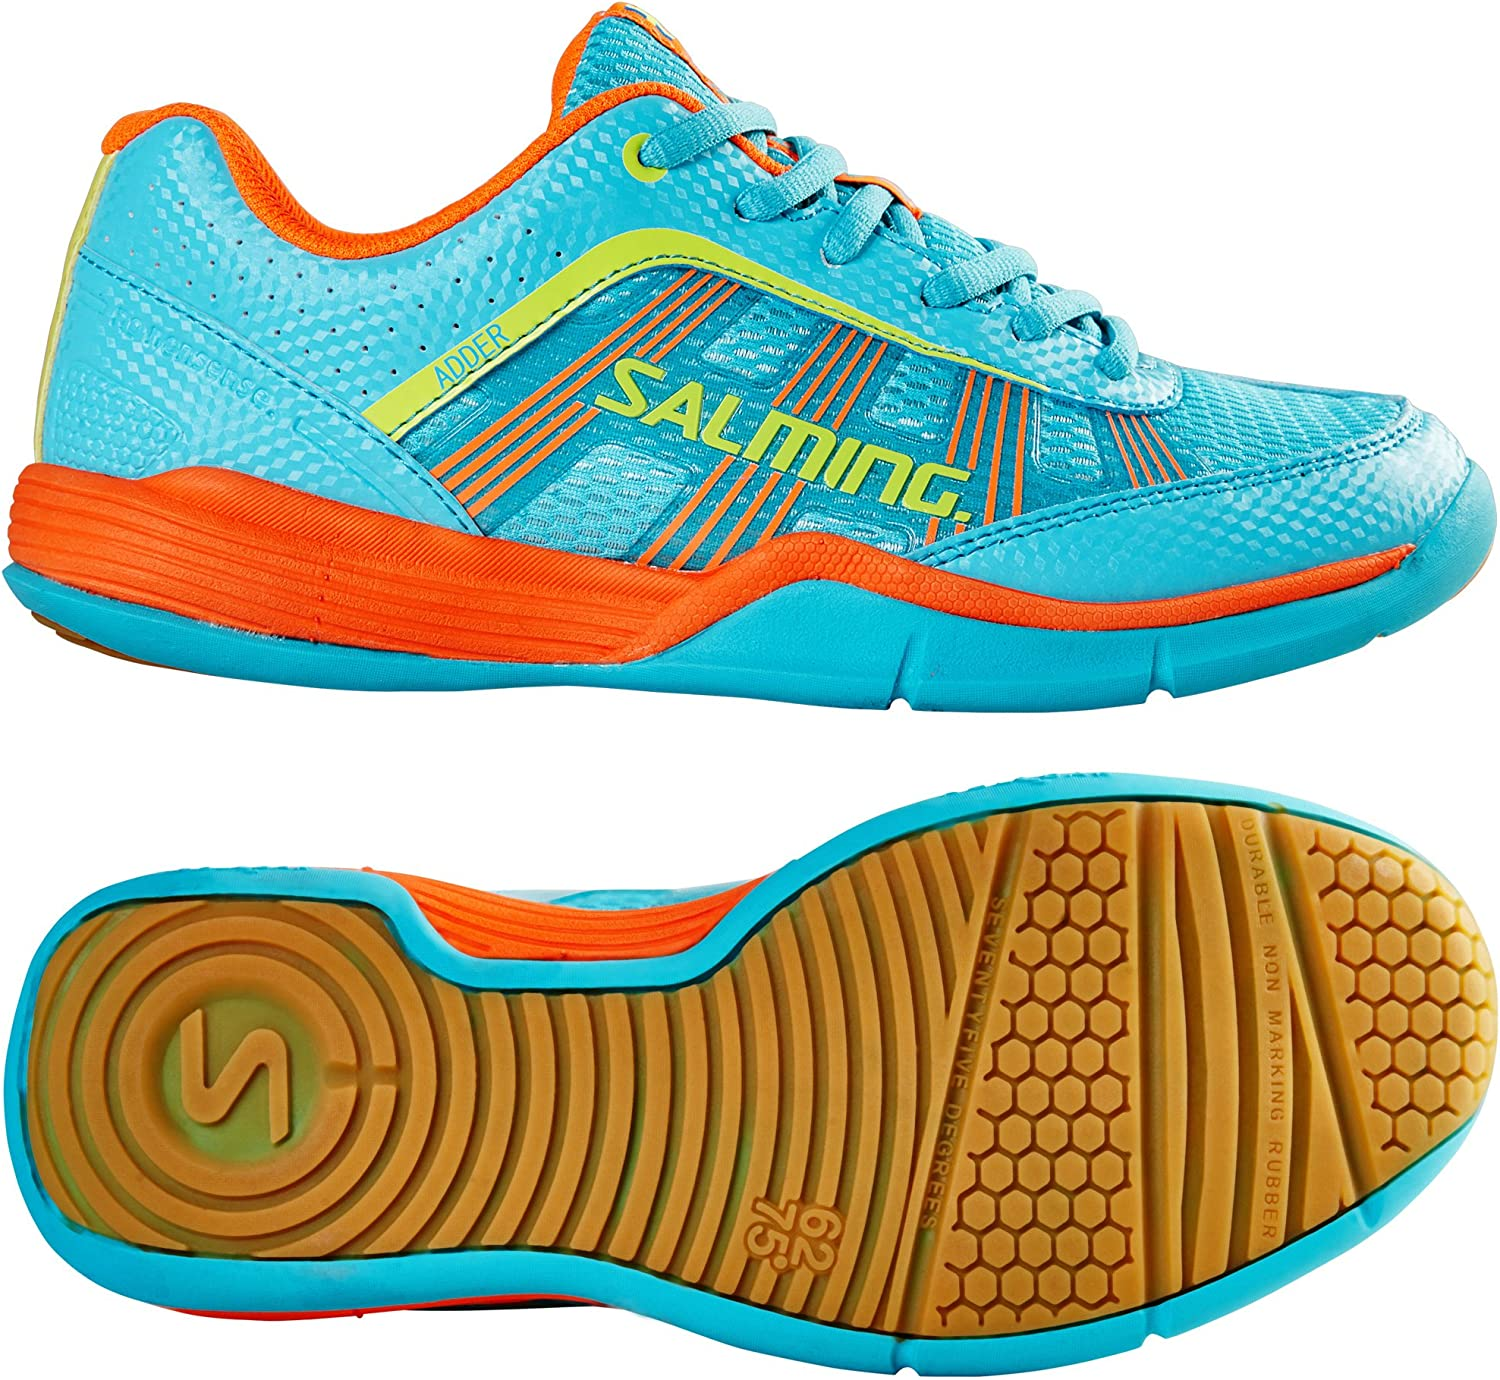 Salming Adder Juniors Indoor Court shoes (Turquoise orange)